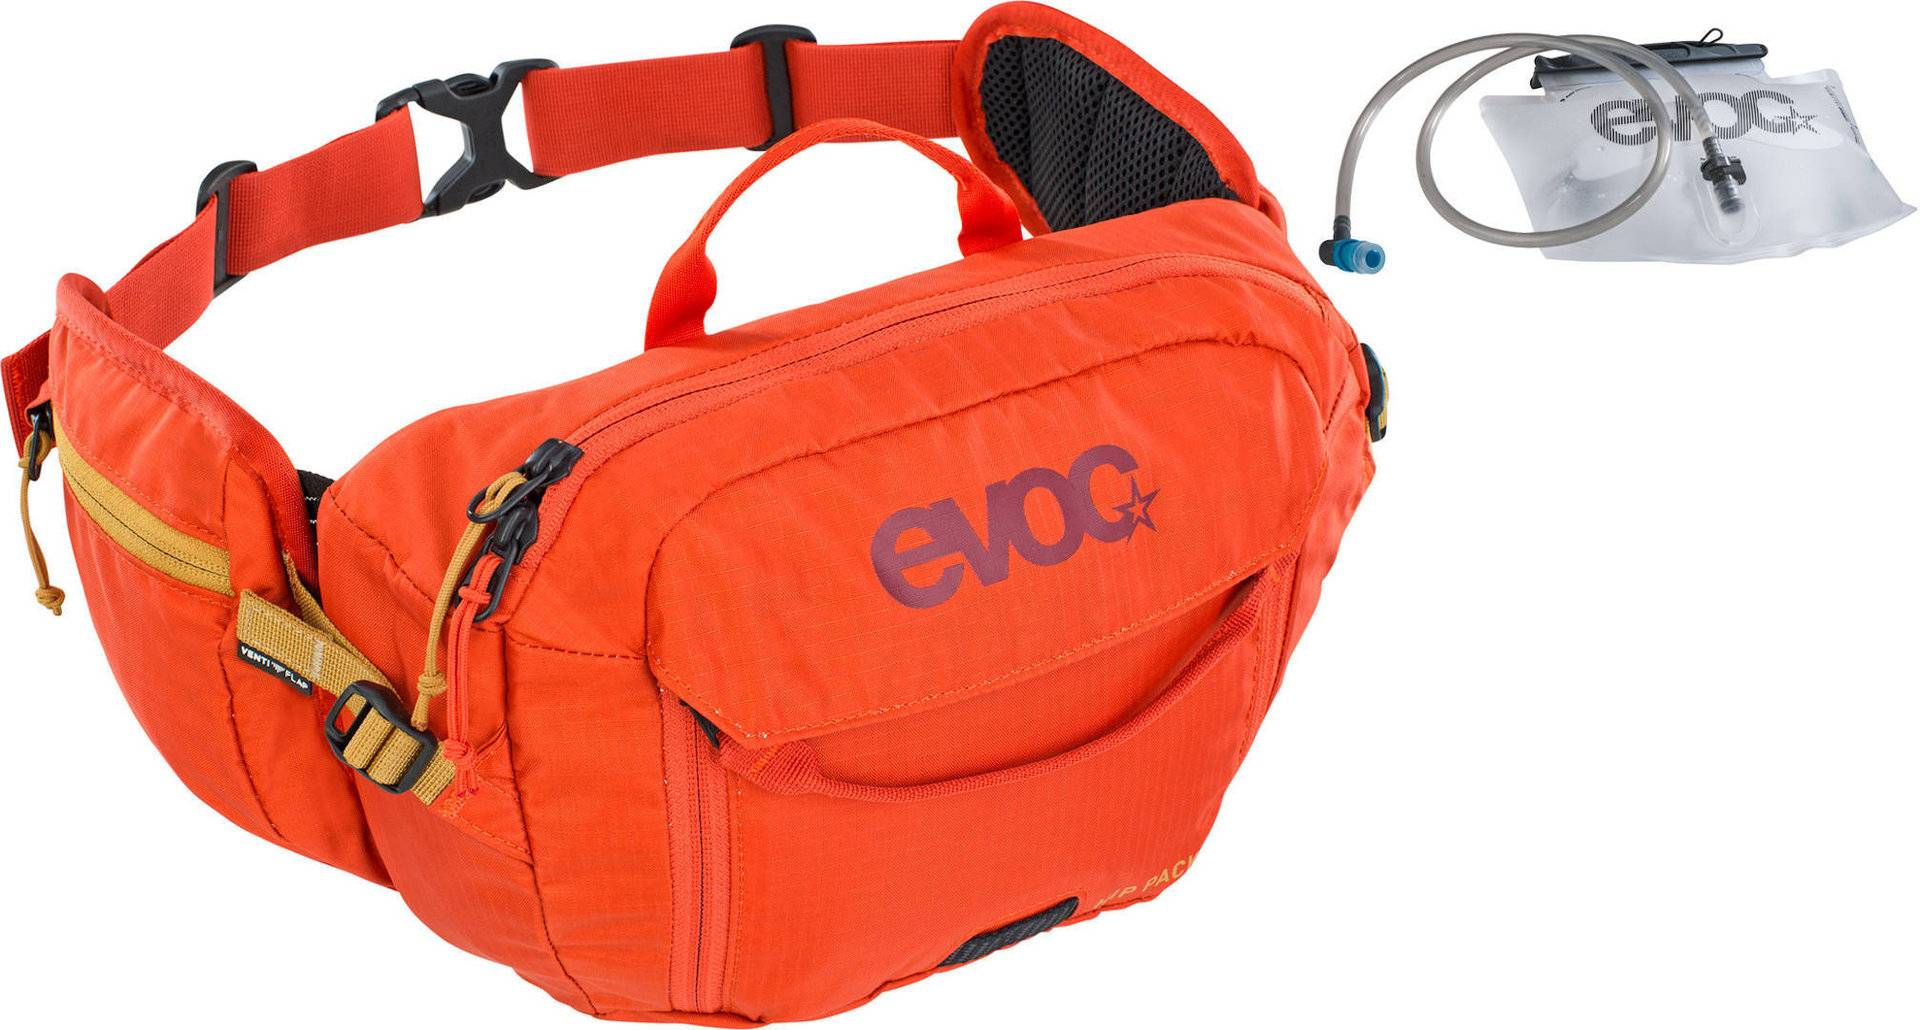 Evoc Hip Pack 3L Sac de hanche - vessie d'hydratation de 1,5 L Orange taille : 0-5l